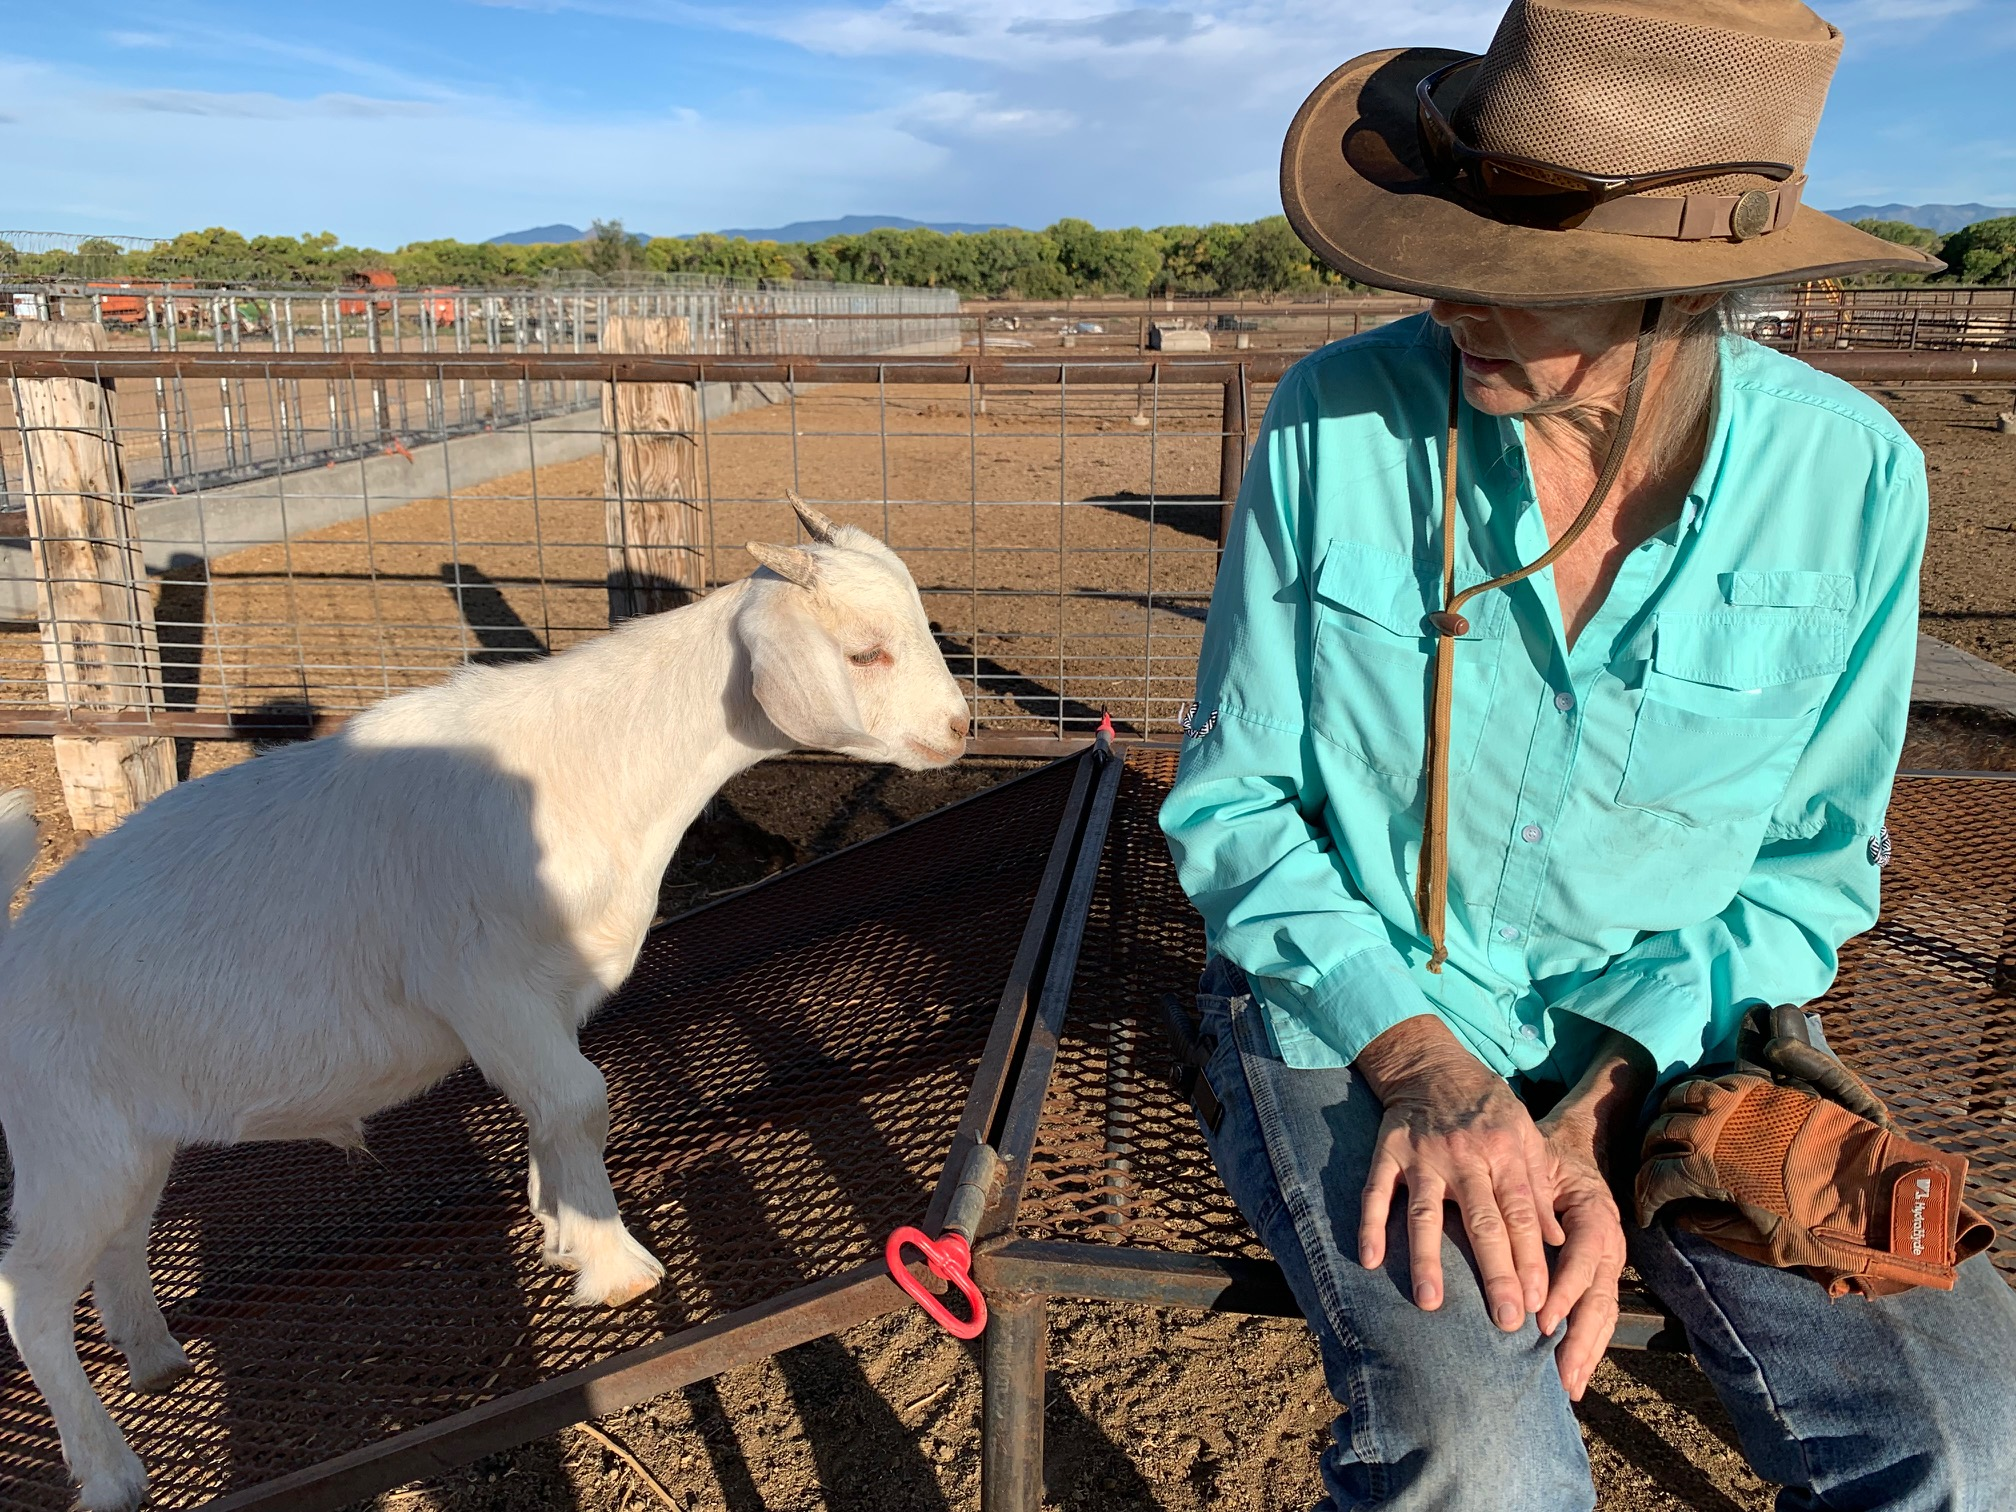 'It's my livelihood': Drought and restrictions could kill farms along Rio Grande, farmers say